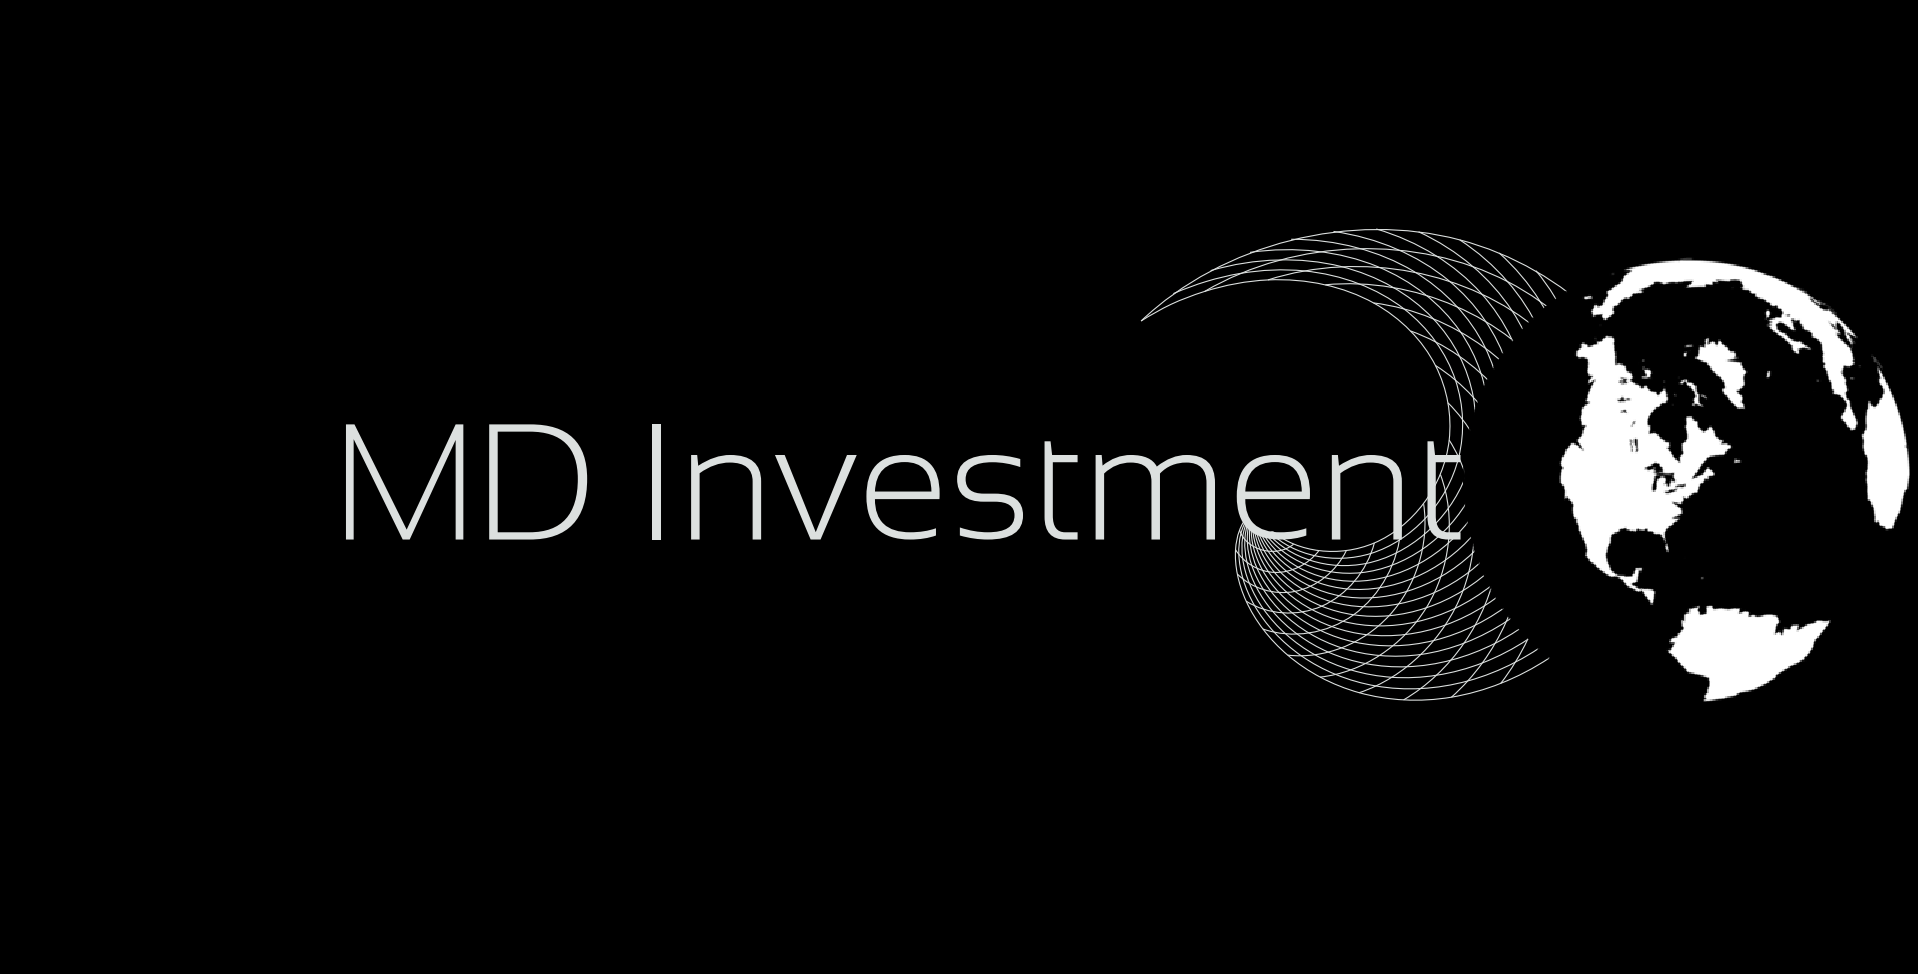 MD Investment